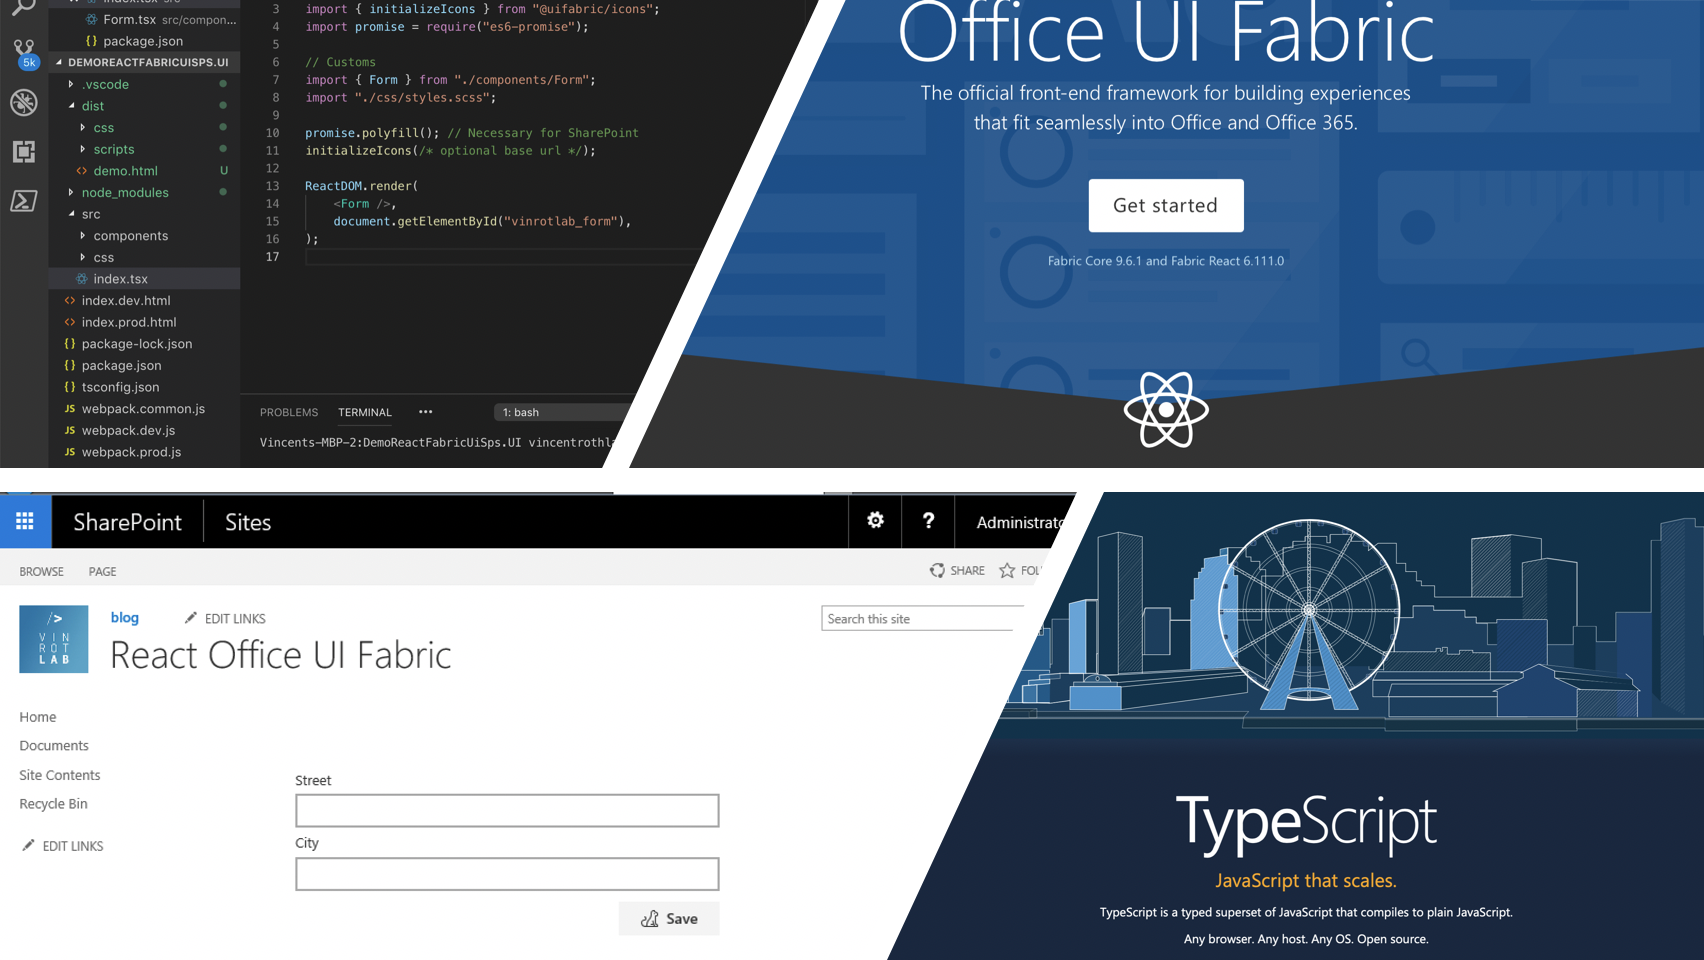 Sps2016 React TypeScript Office UI Fabric